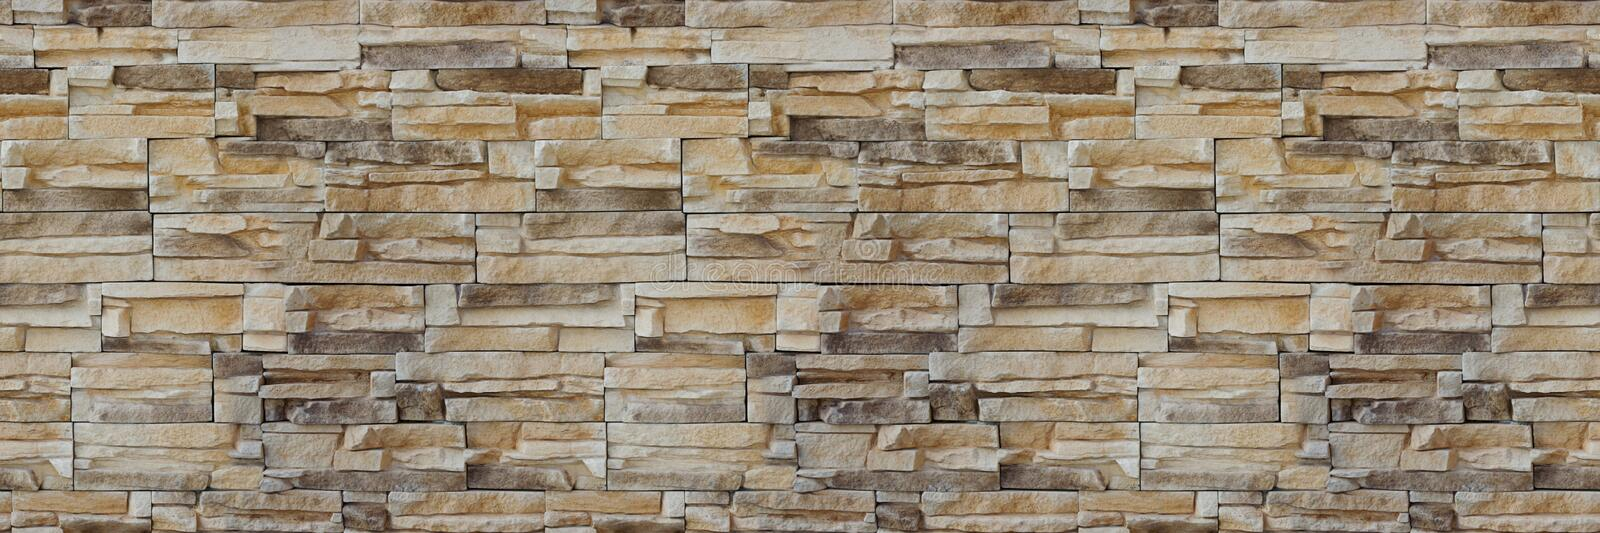 Stone wall brick texture. Seamless pattern. Background of the Sandstone facade. stock photos